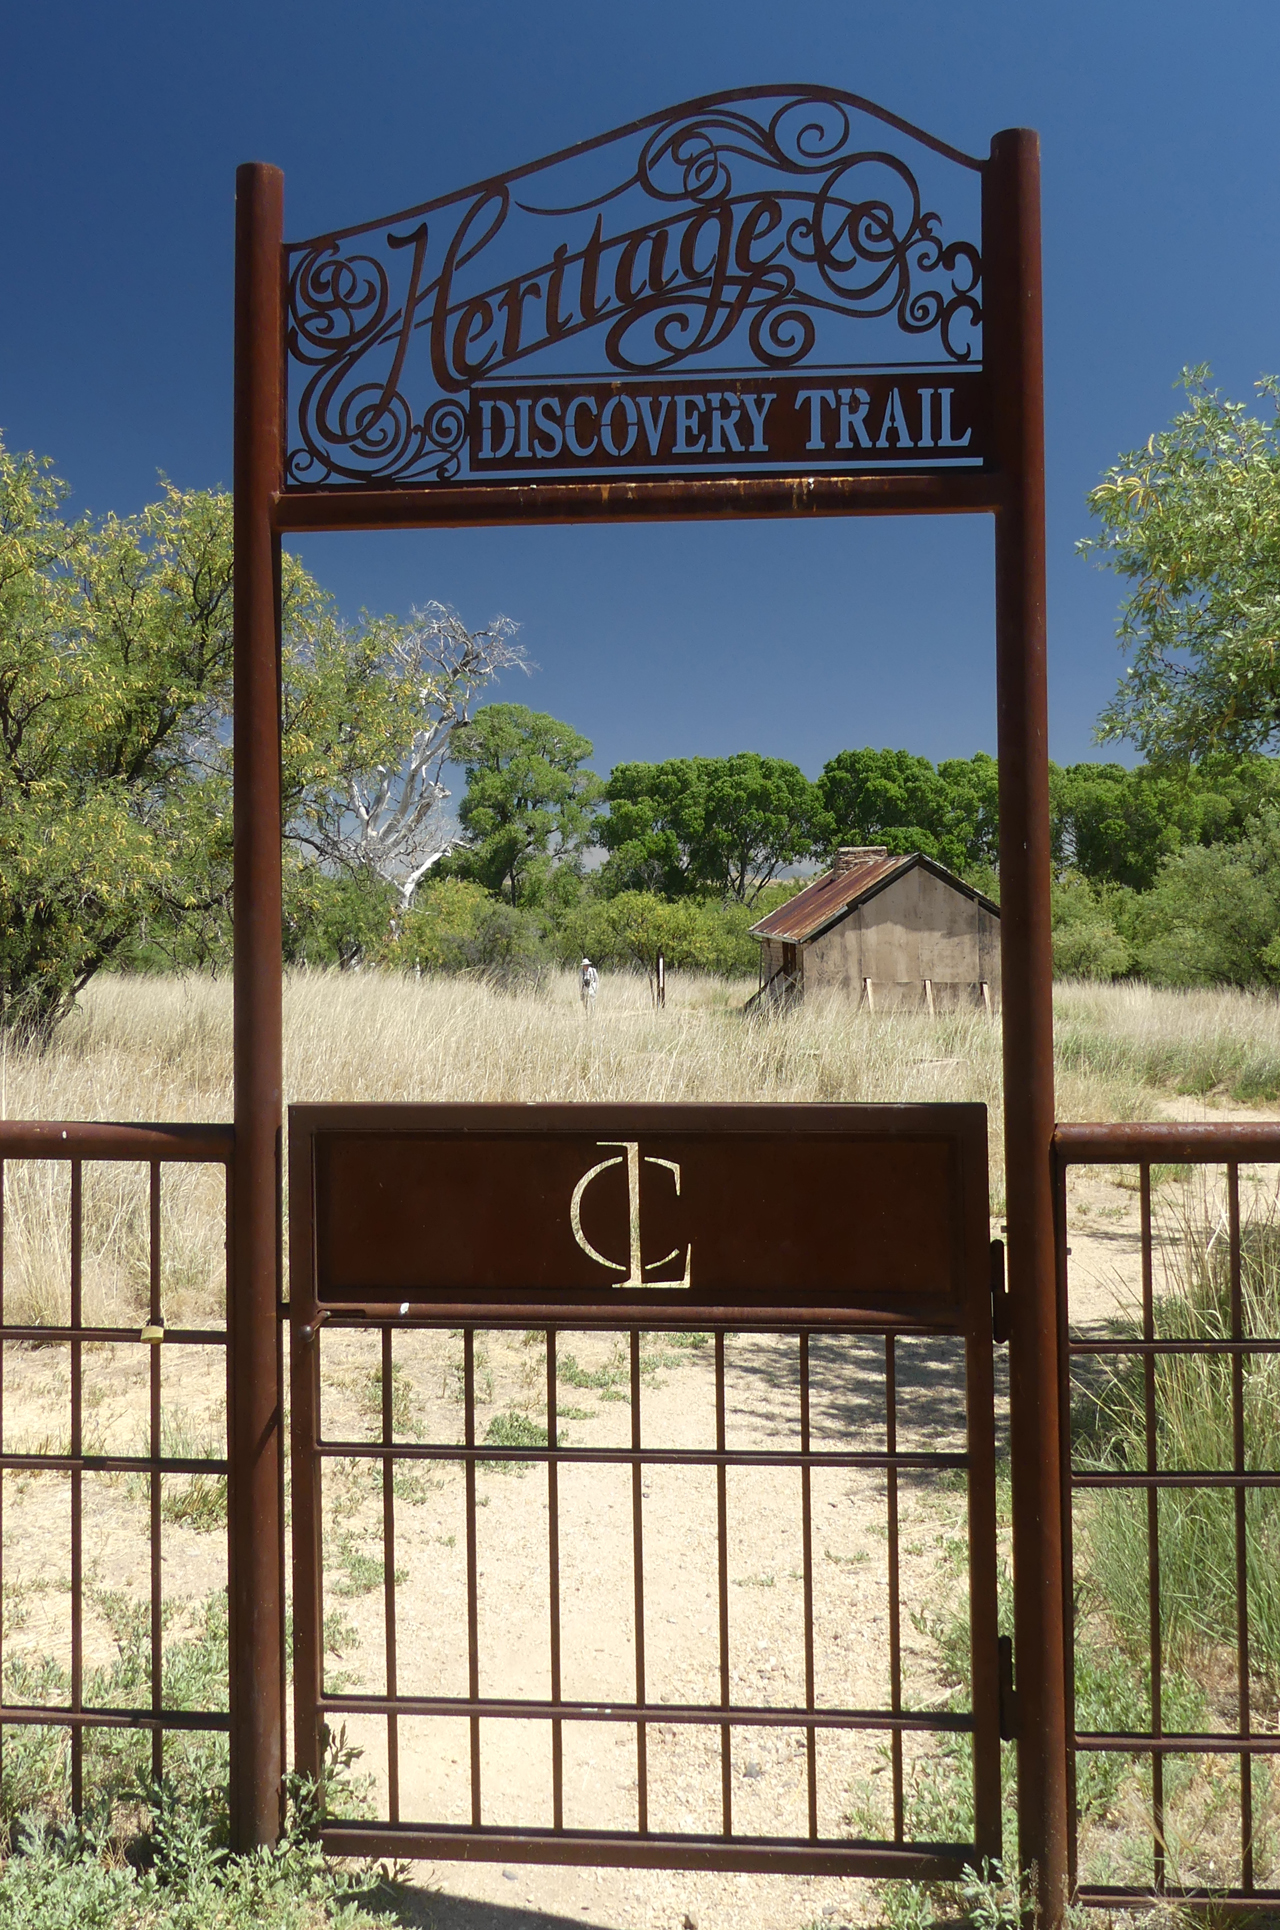 Discovery Trail